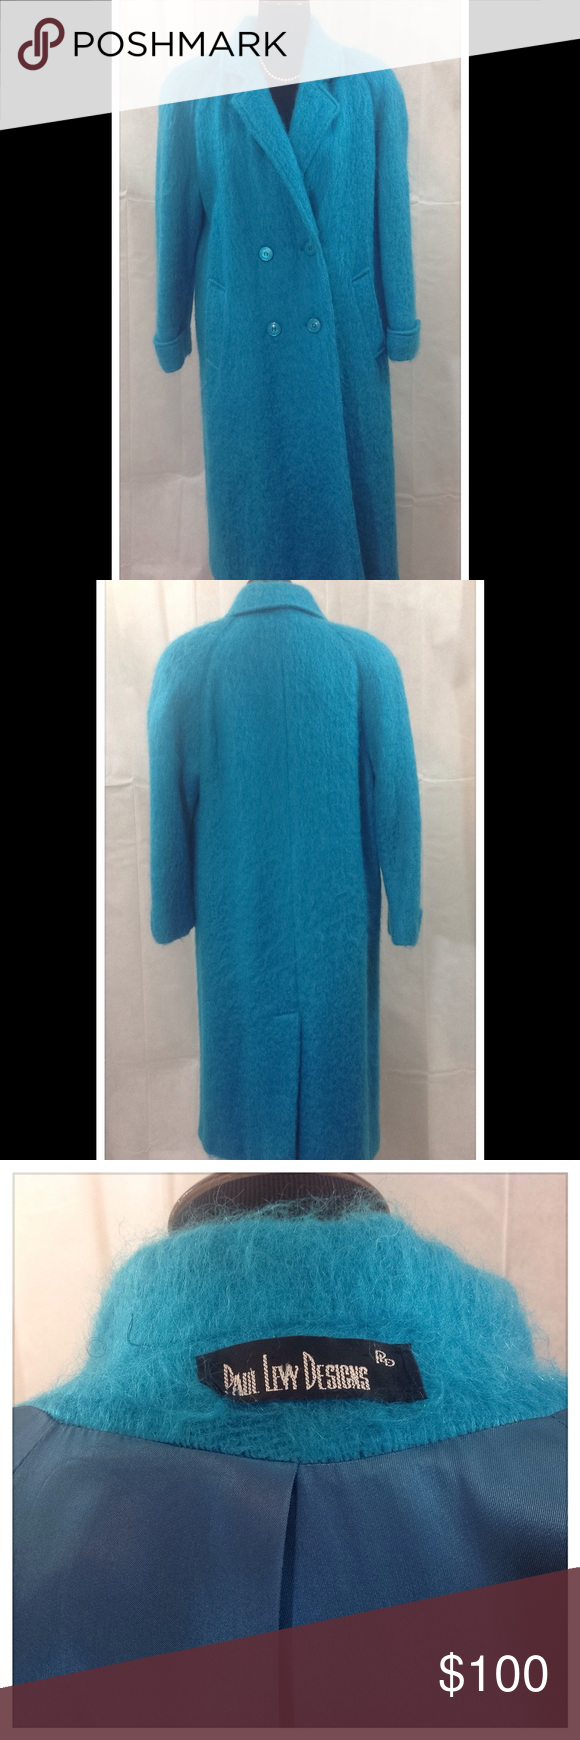 "Turquoise Winter Coat This beautiful turquoise coat is very unique in color. It's missing it's tags, but is a cashmere/wool blend and Dry clean only. I wear it comfortably at a size 14. Chest and hips measure 46"". Paul Ivy Designs Jackets & Coats"